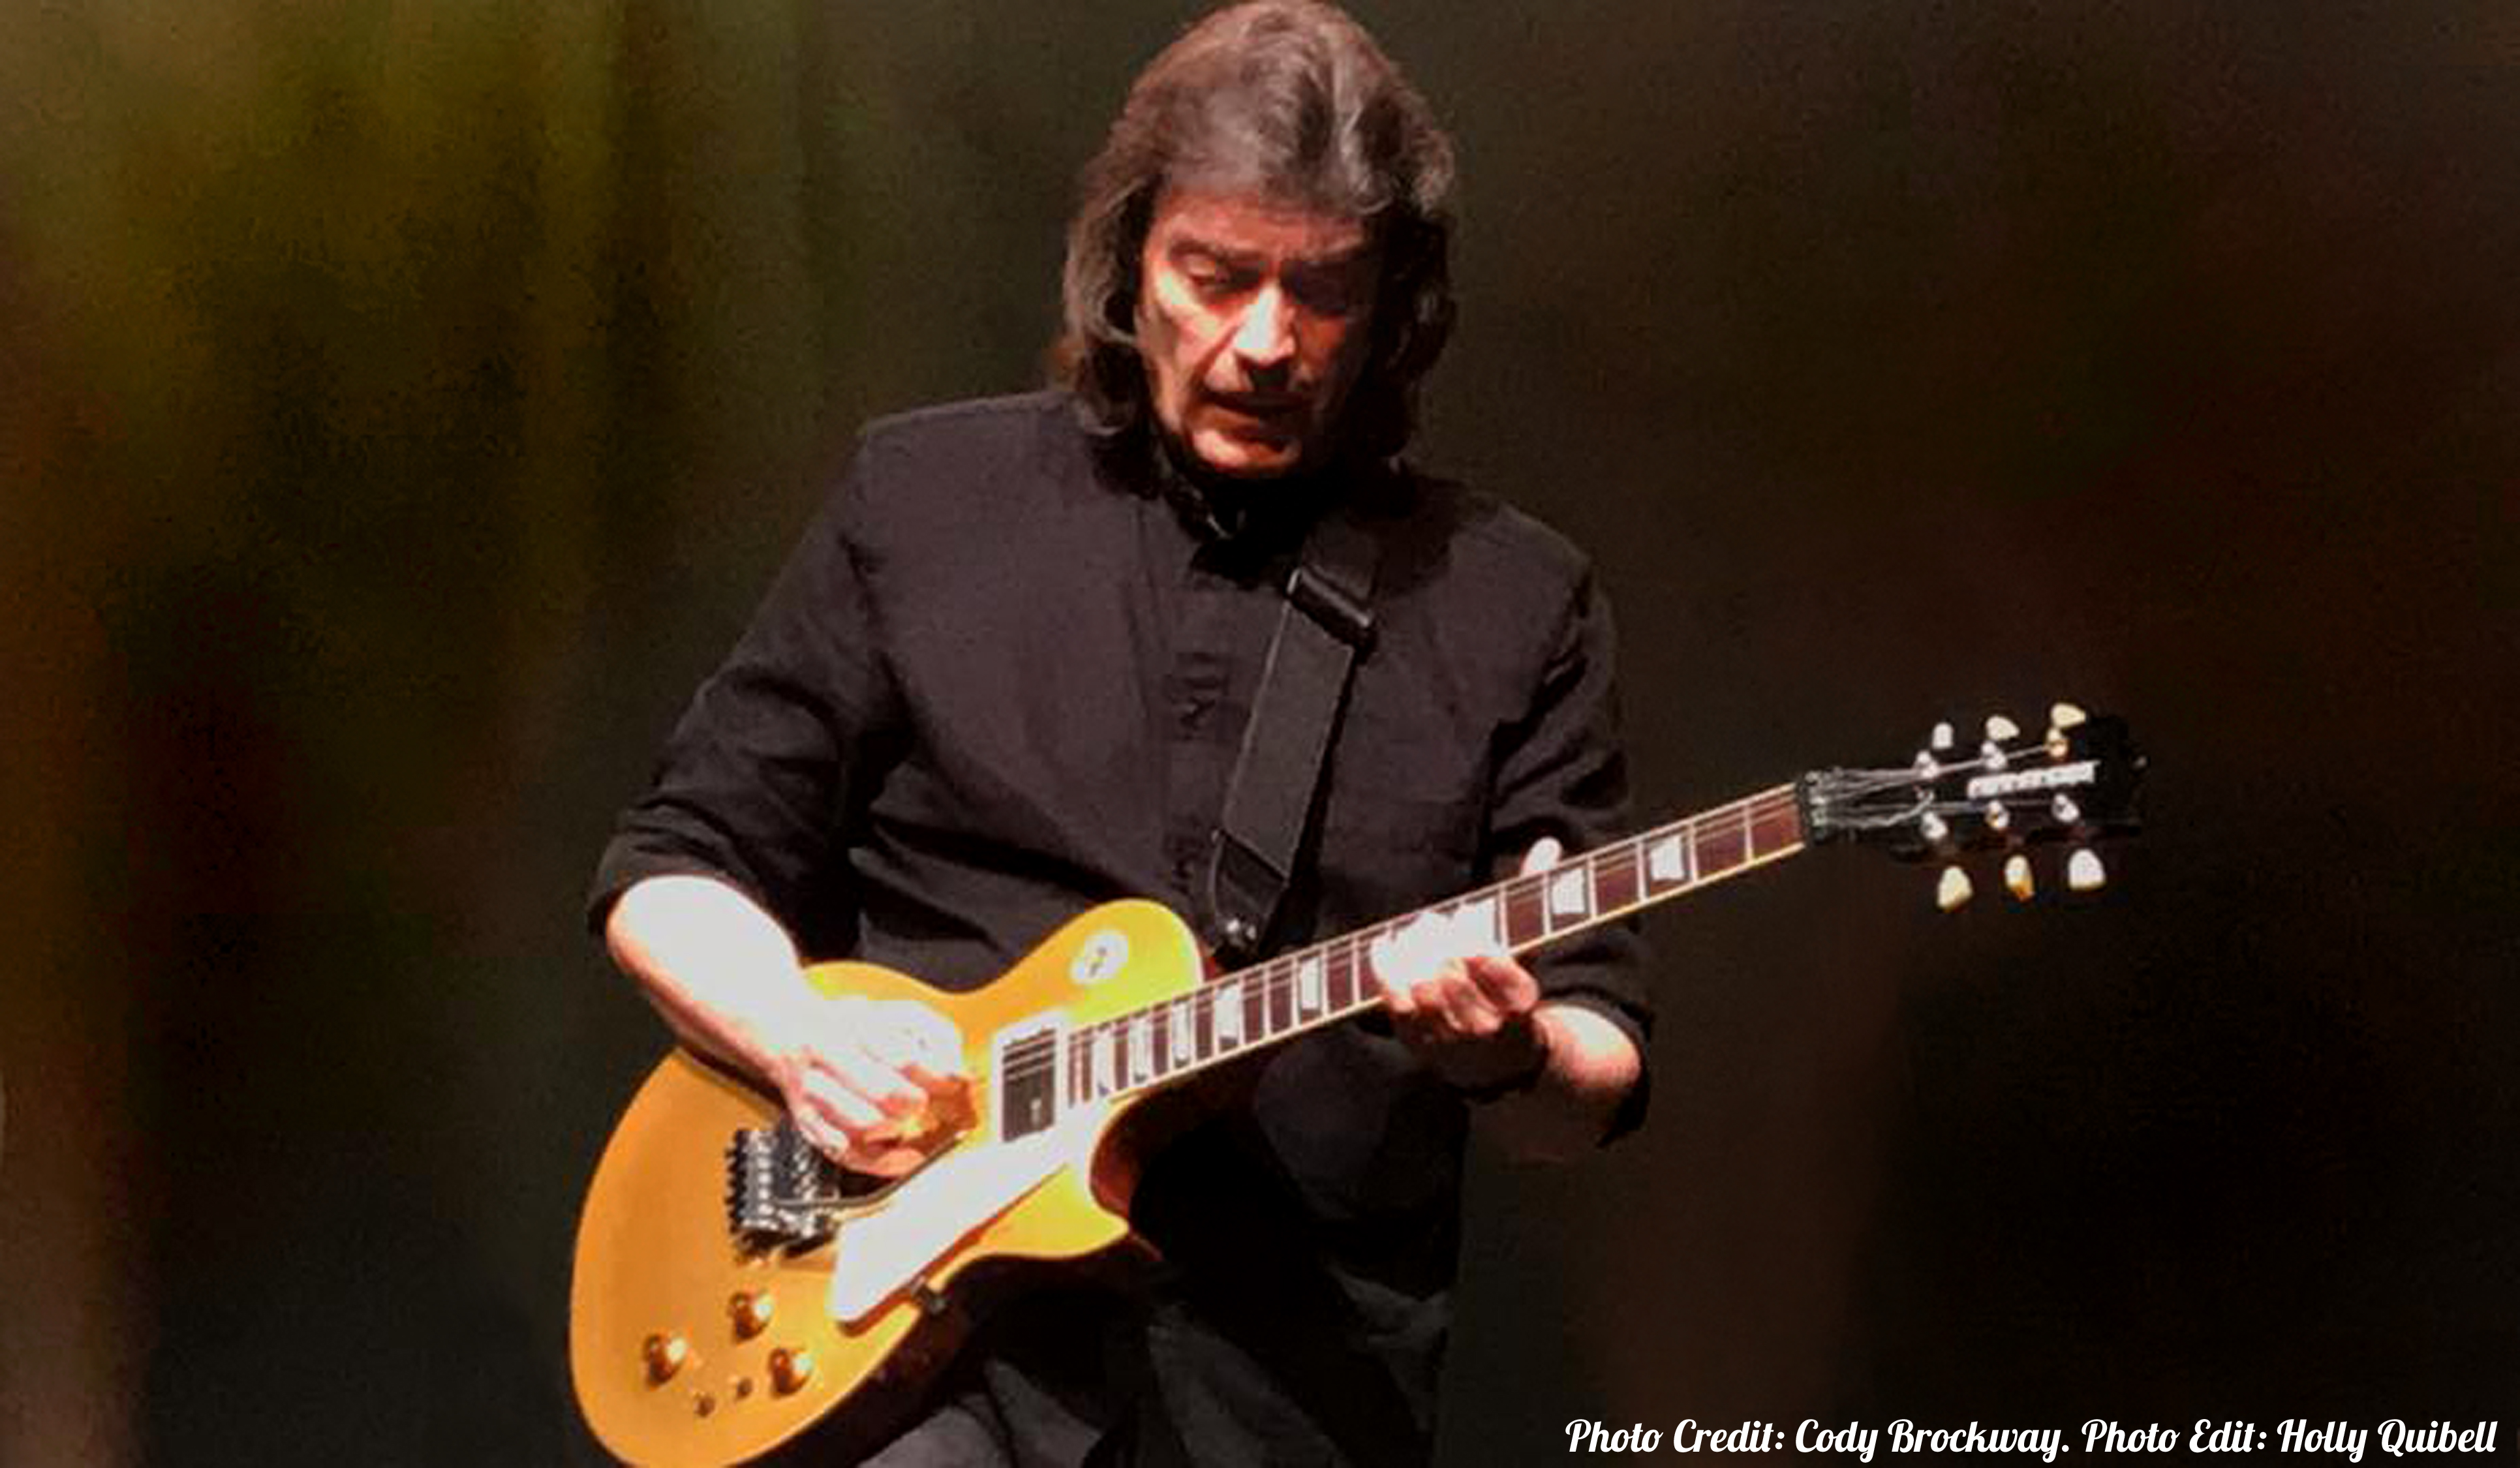 From hackett to holly a steve hackett concert review personal from hackett to holly a steve hackett concert review personal reflection rambling on music m4hsunfo